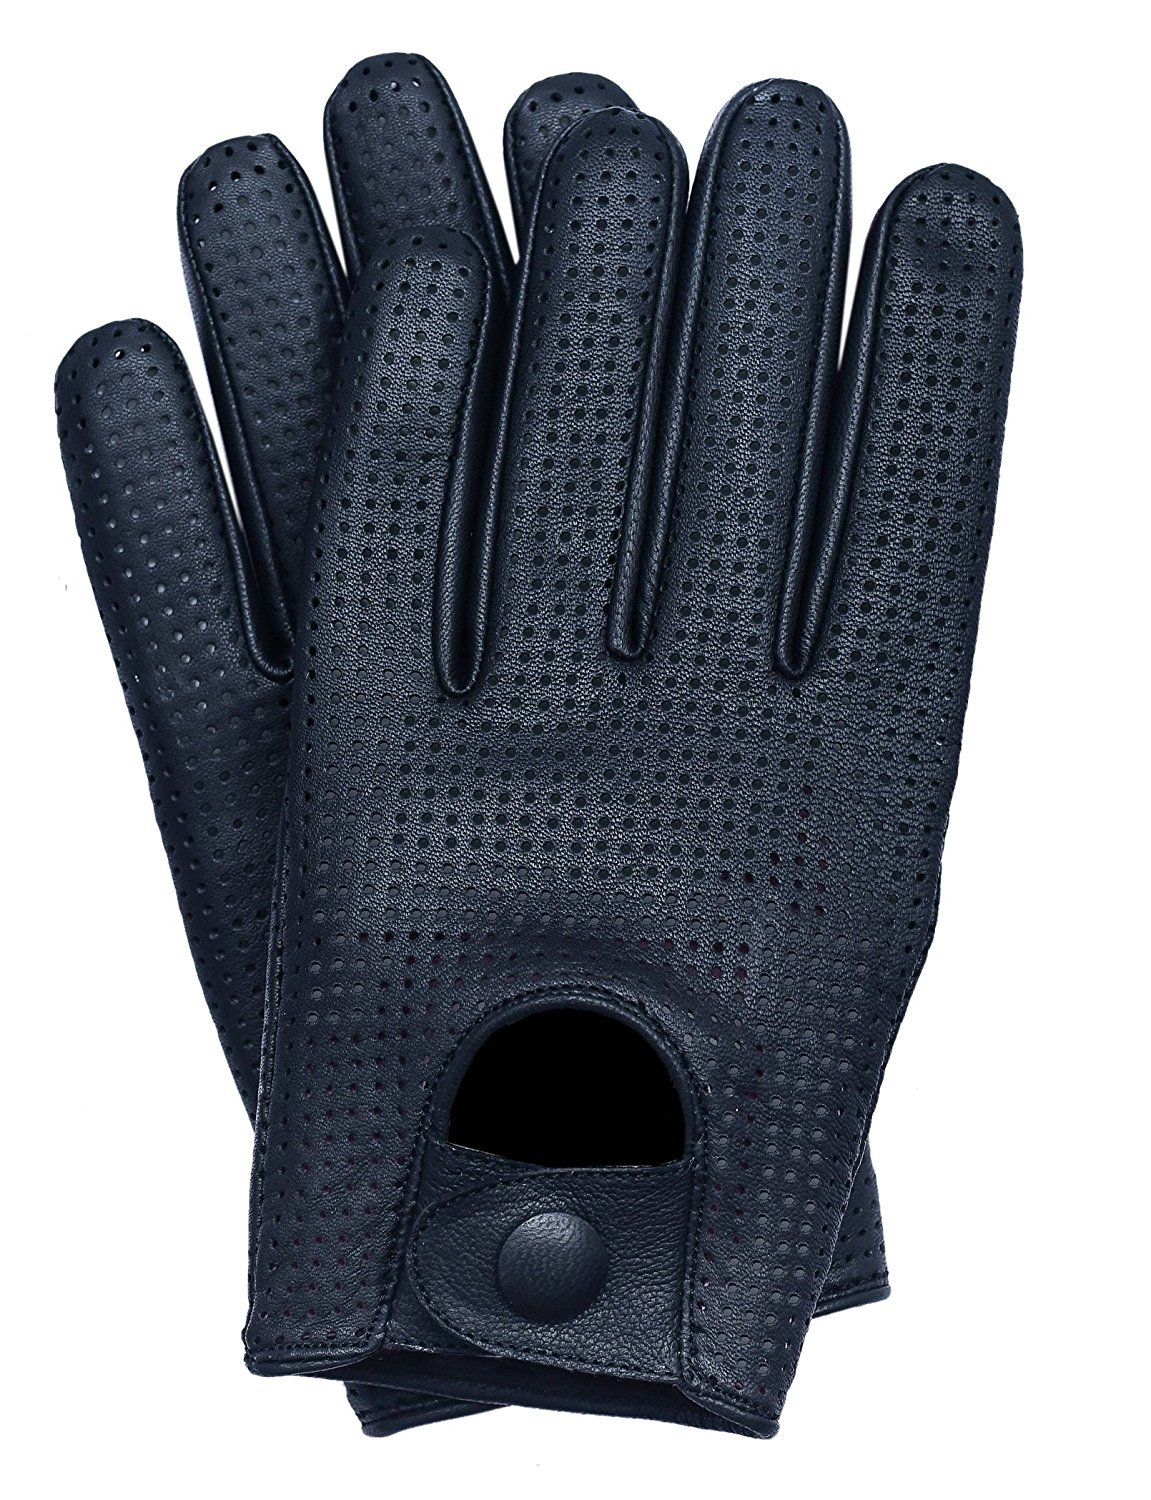 Riparo Men's Touchscreen Texting Mesh Perforated Summer Driving Motorcycle Leather Gloves (X-Large, Black)